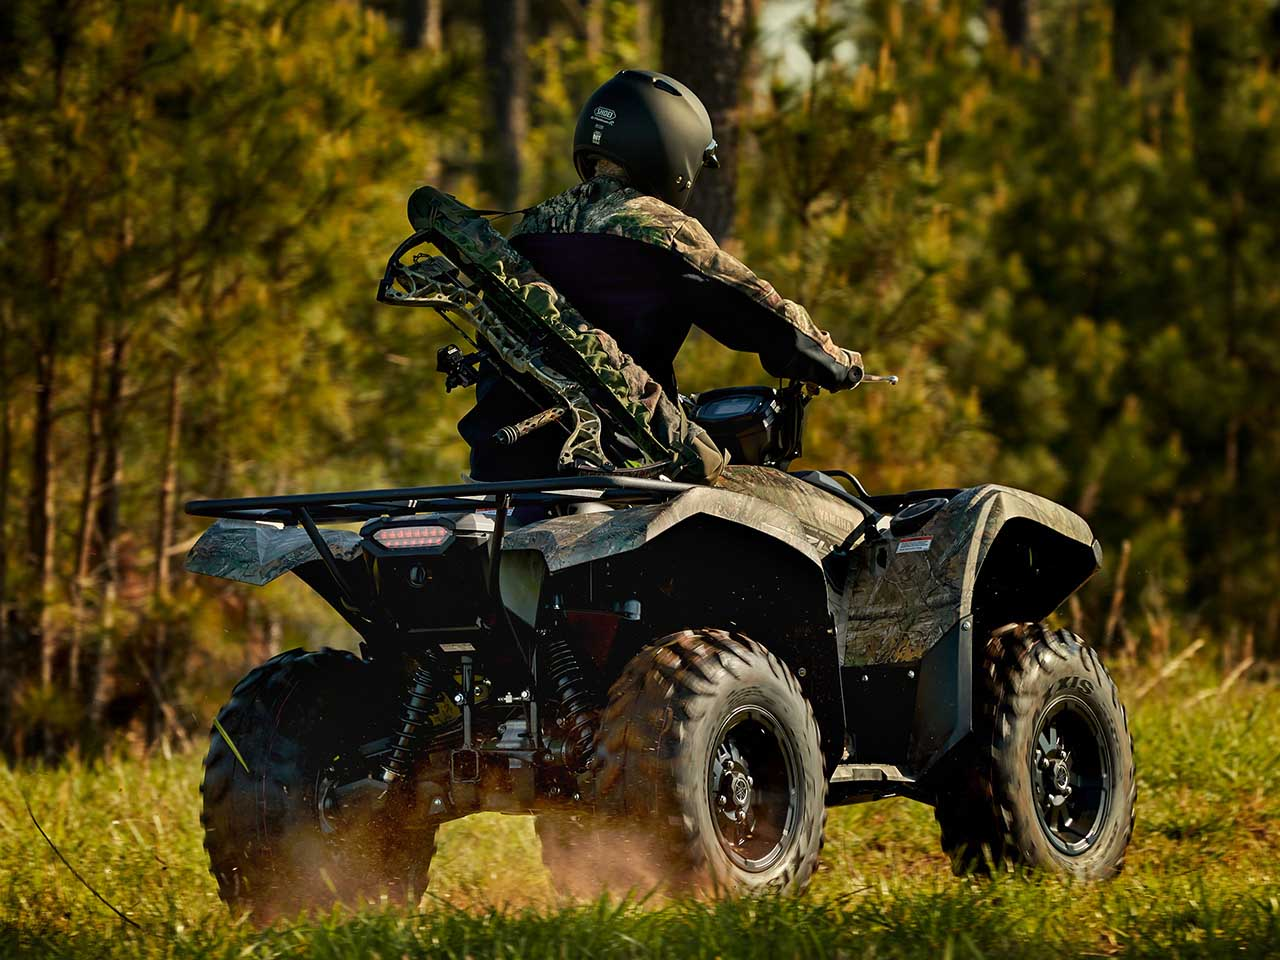 2020 Yamaha Grizzly 700 Camo Gallery 1